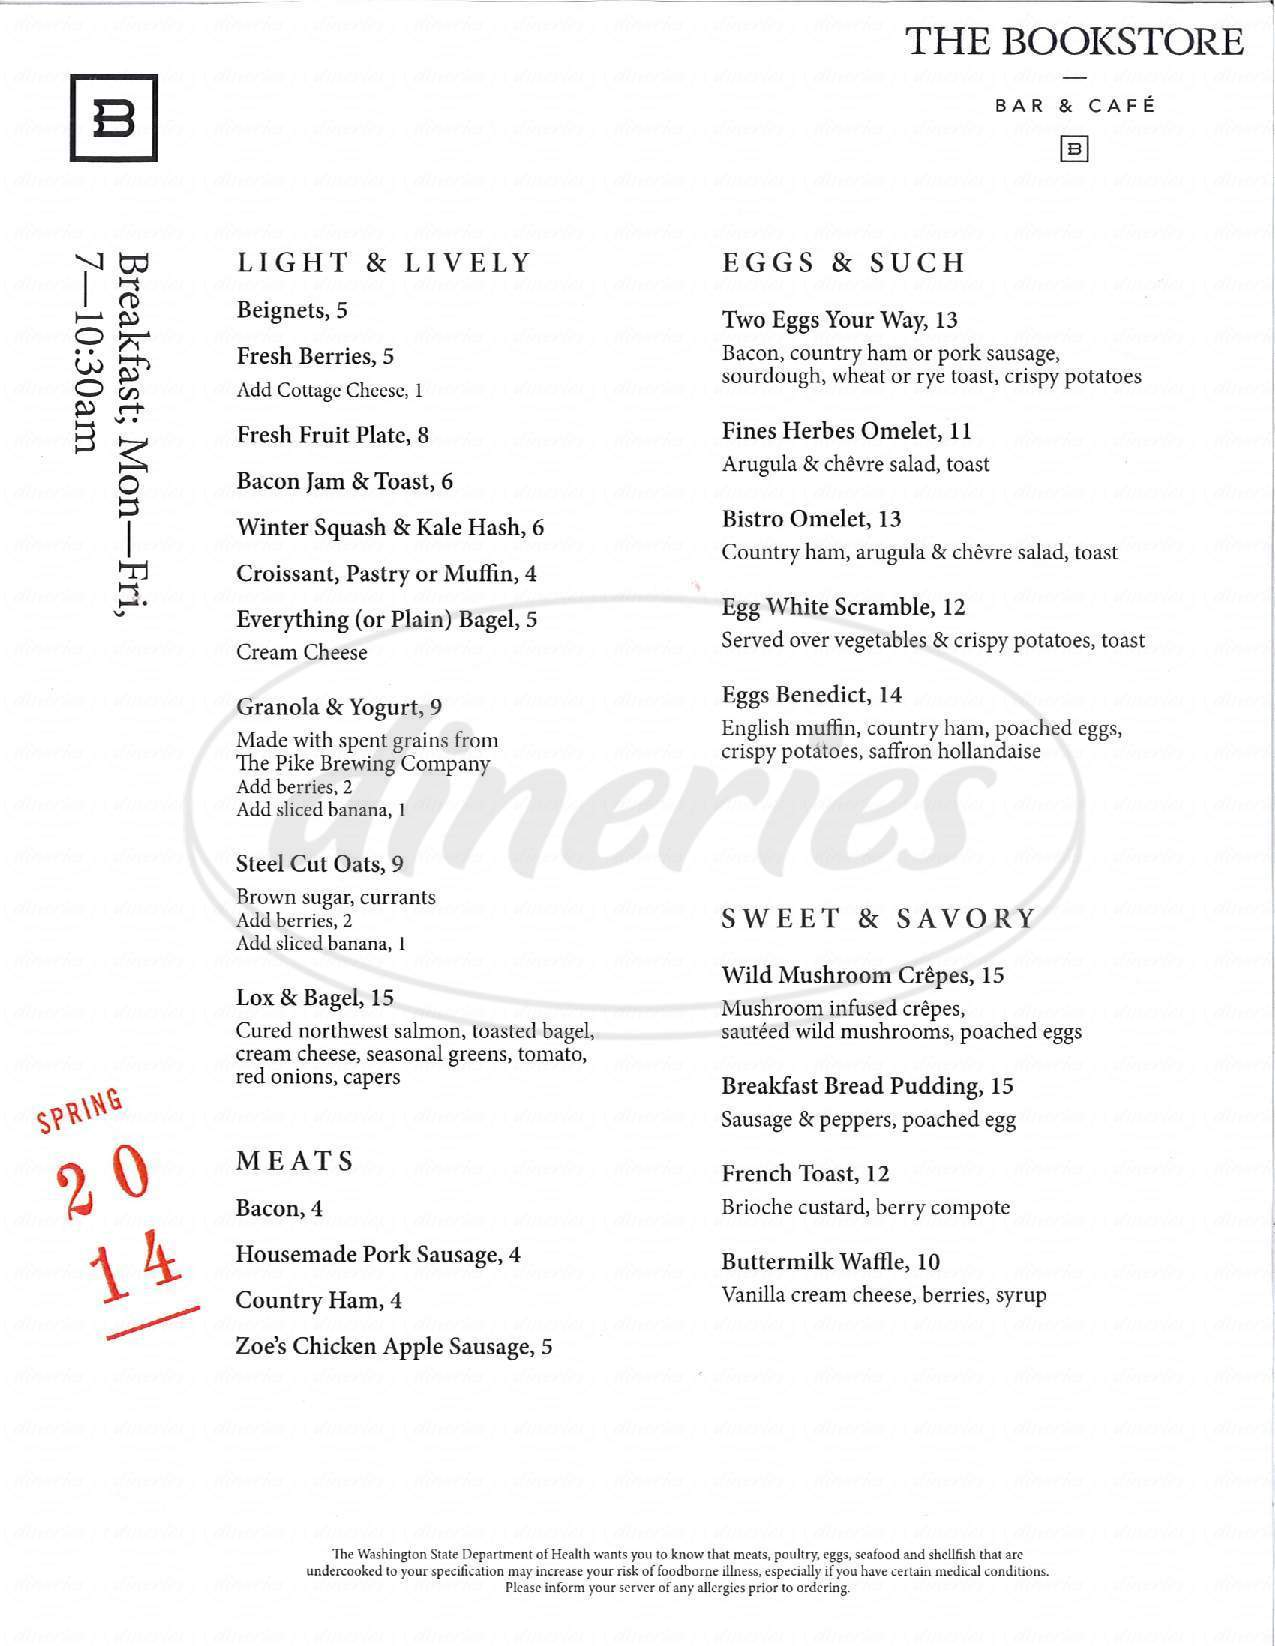 menu for Bookstore Bar